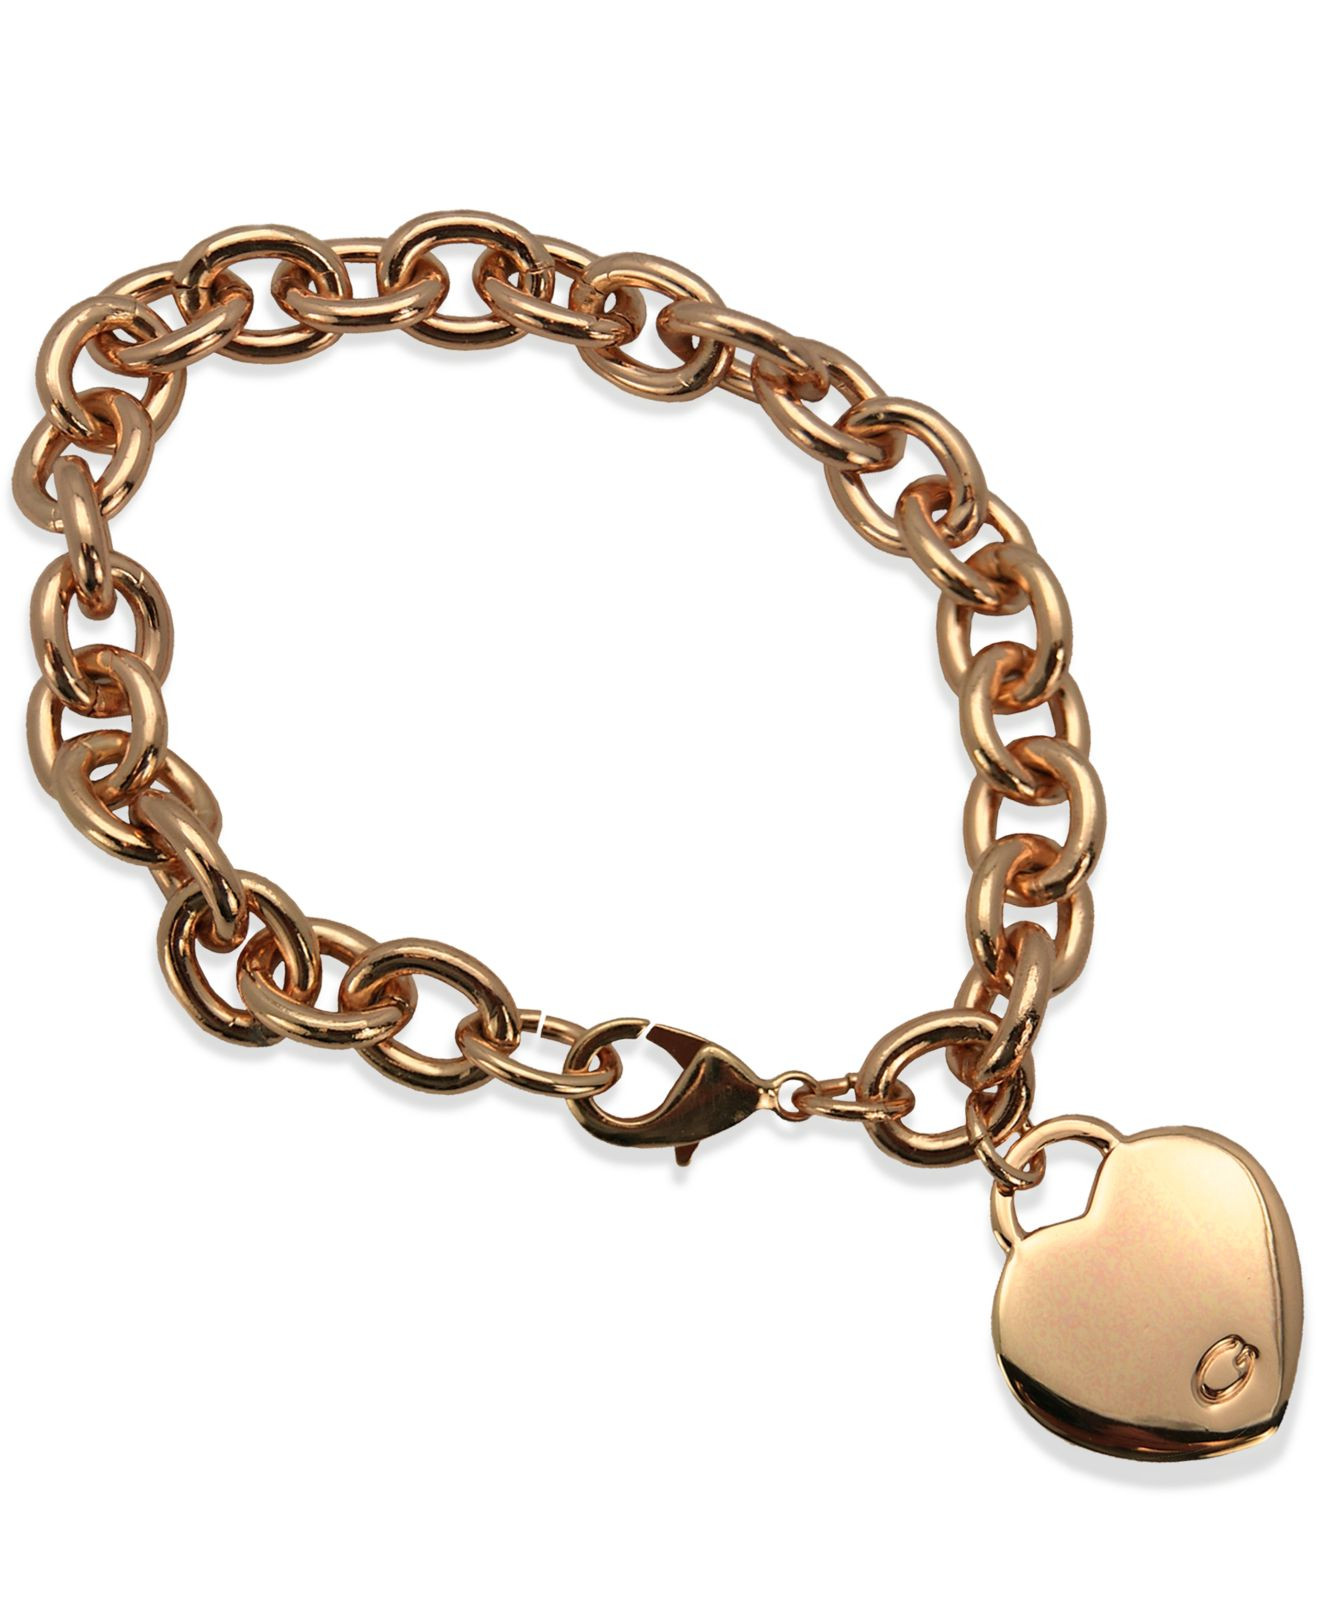 Guess Charm Bracelet  Lyst Guess Rose Gold tone Heart Charm Link Bracelet in Pink